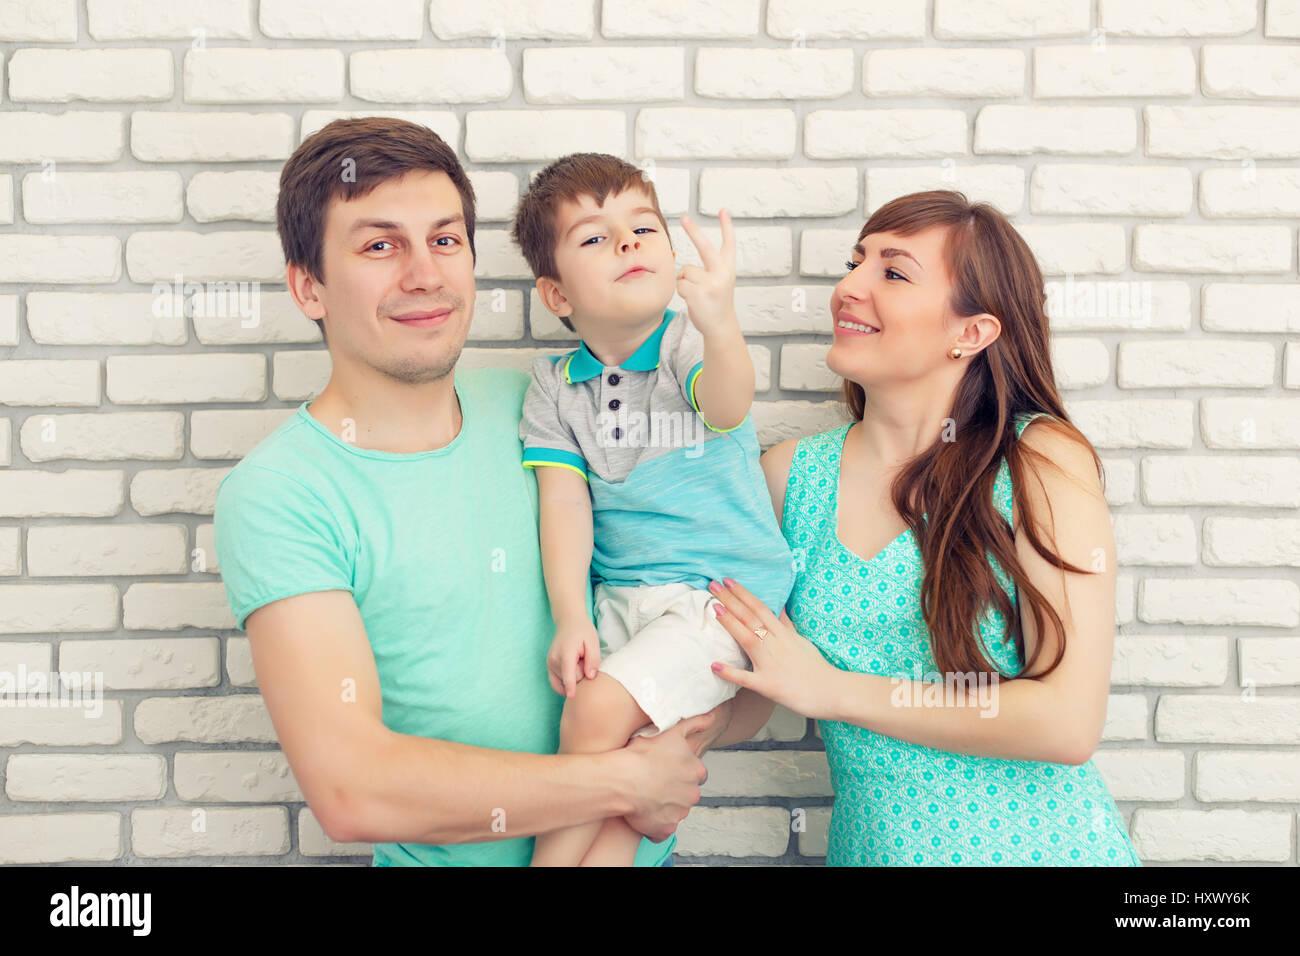 Happy and smiling young family Portrait on Brick wall Background. Father and Mother with Little Baby boy. Parents - Stock Image